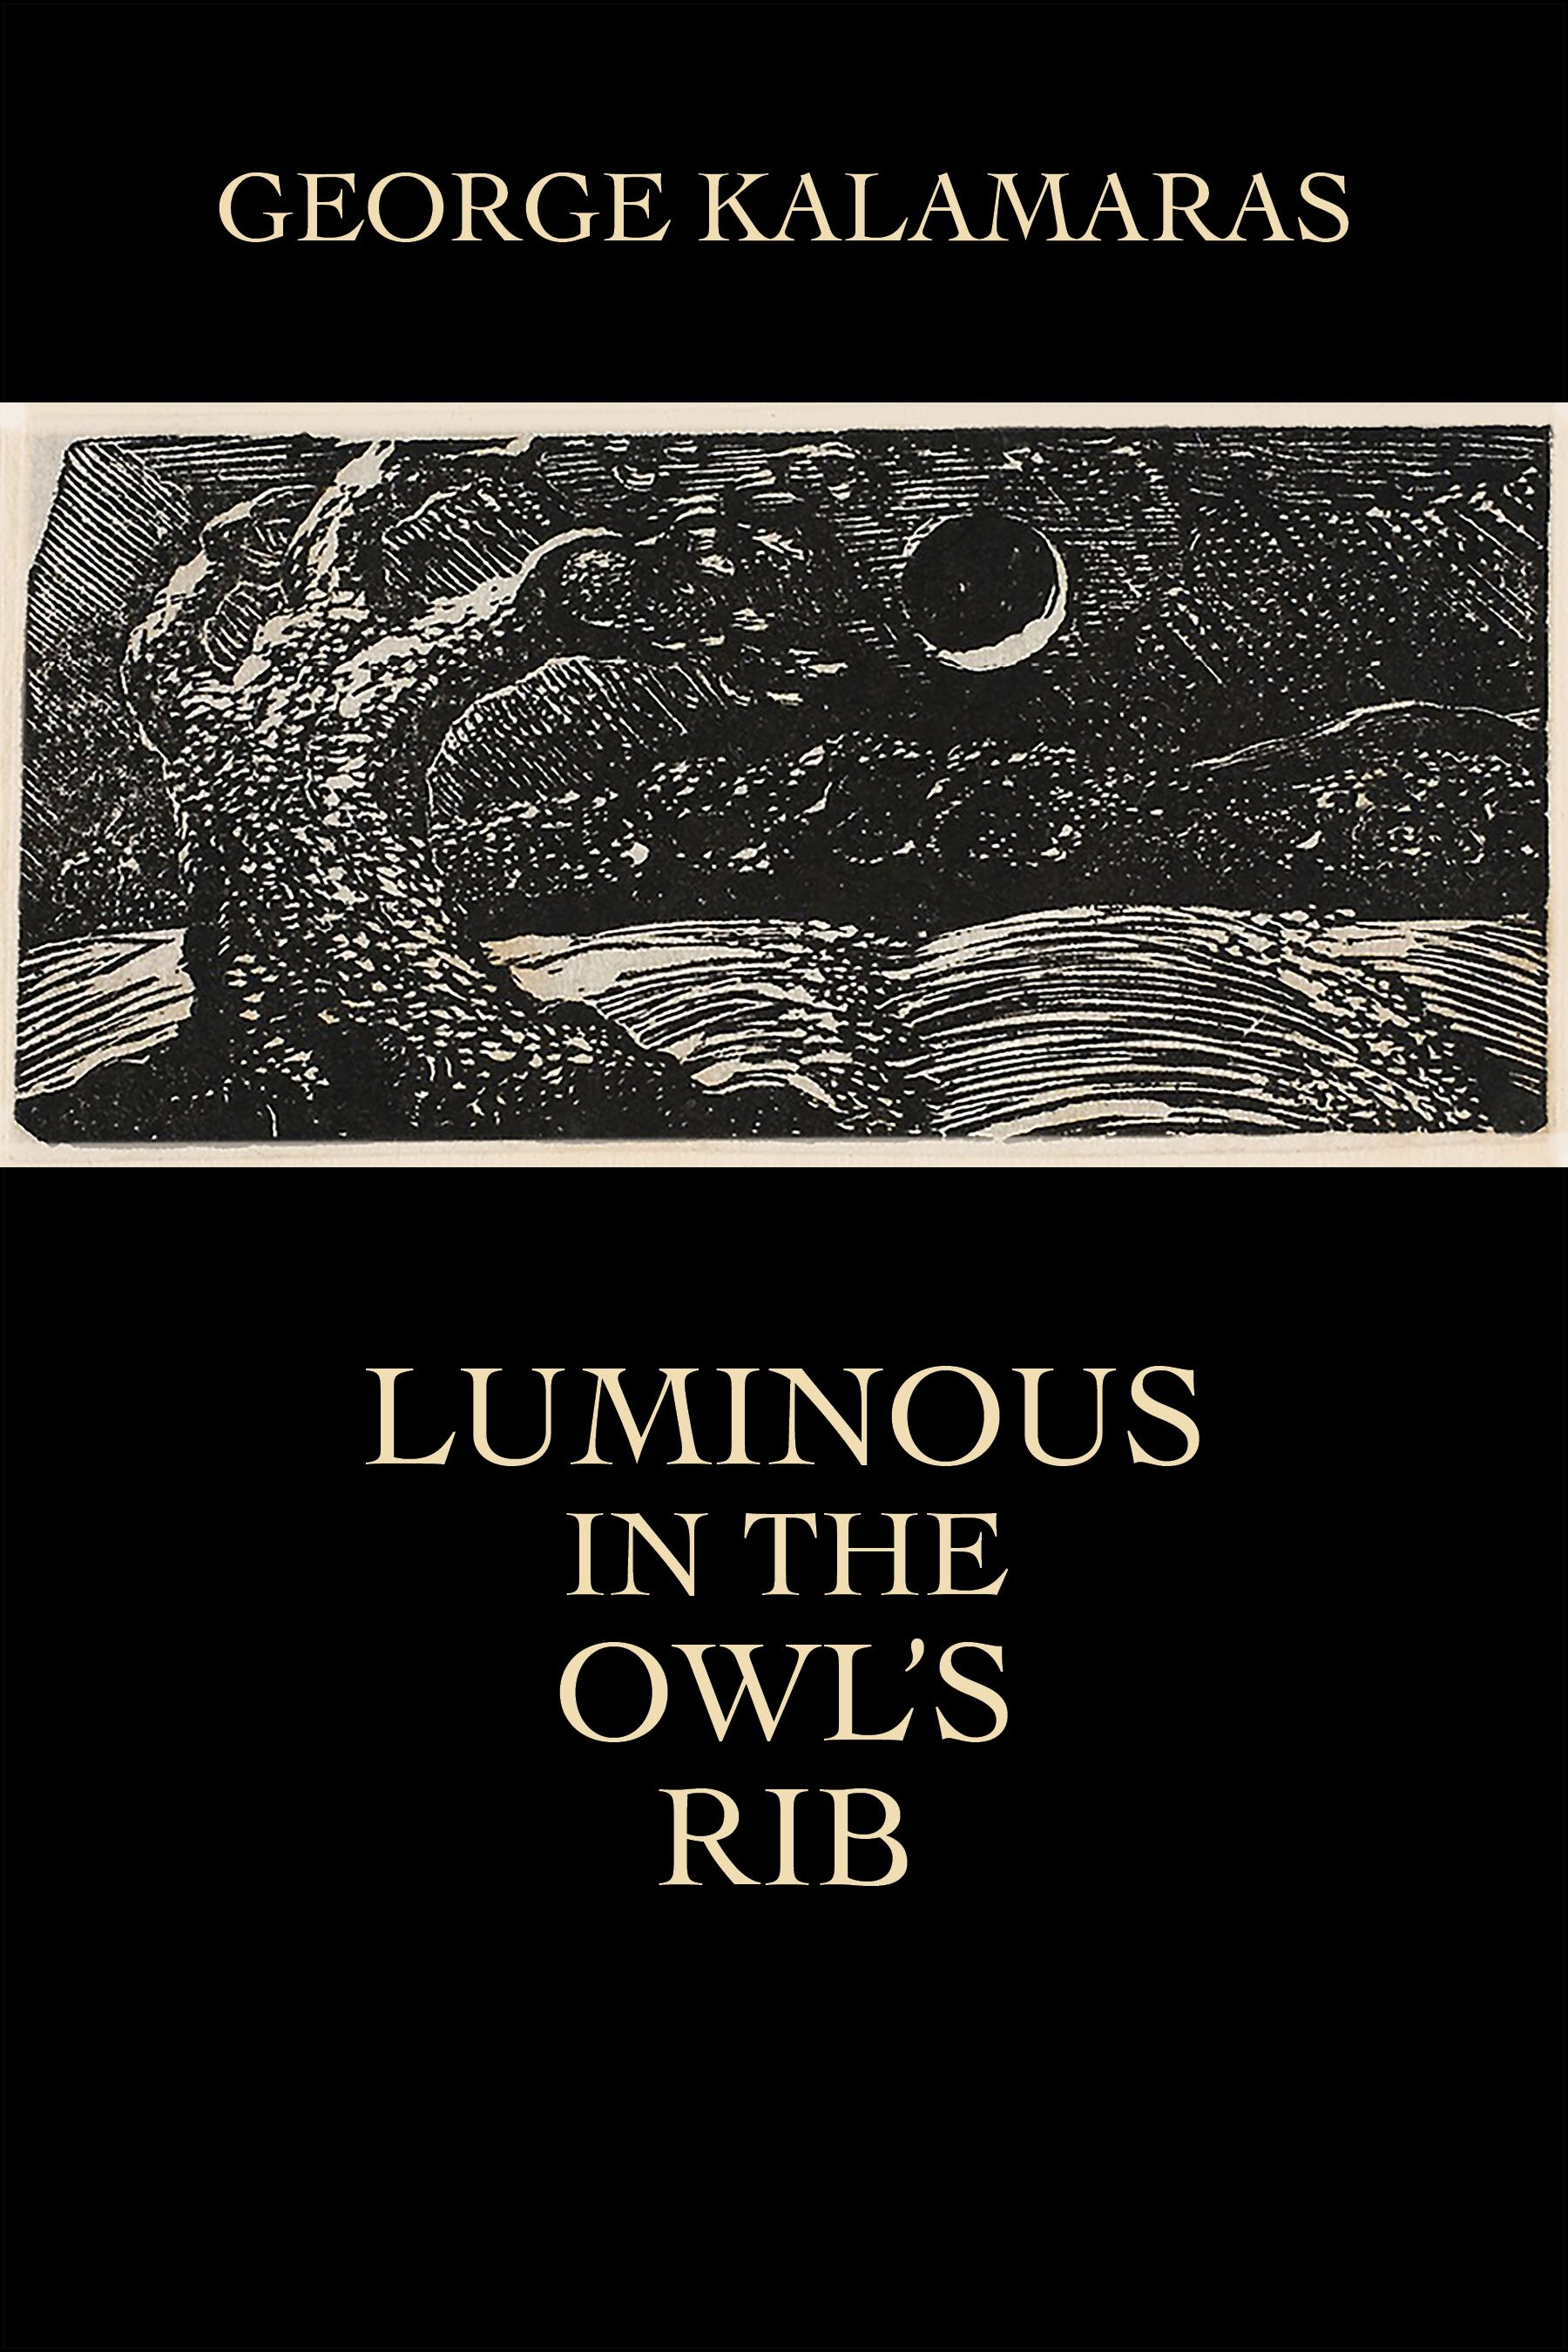 Luminous in the Owl's Rib